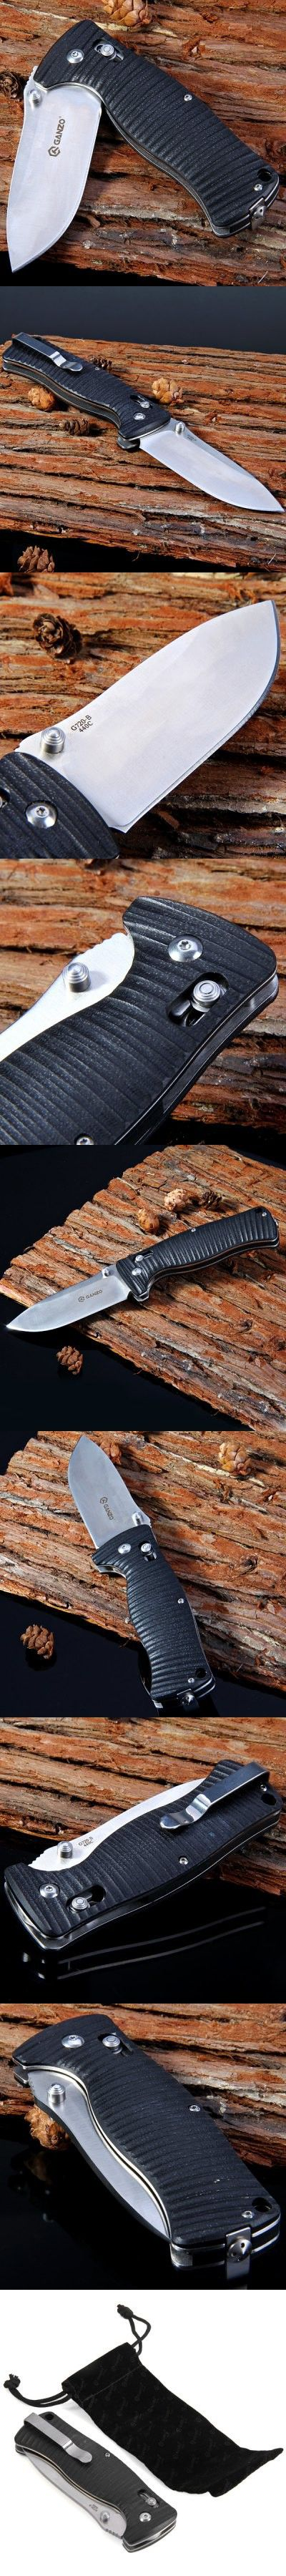 Pocket Knives and Folding Knives | Ganzo G720 Tactical Folding Knife for Home / Outdoor Camping / Hiking / Adventure Activities